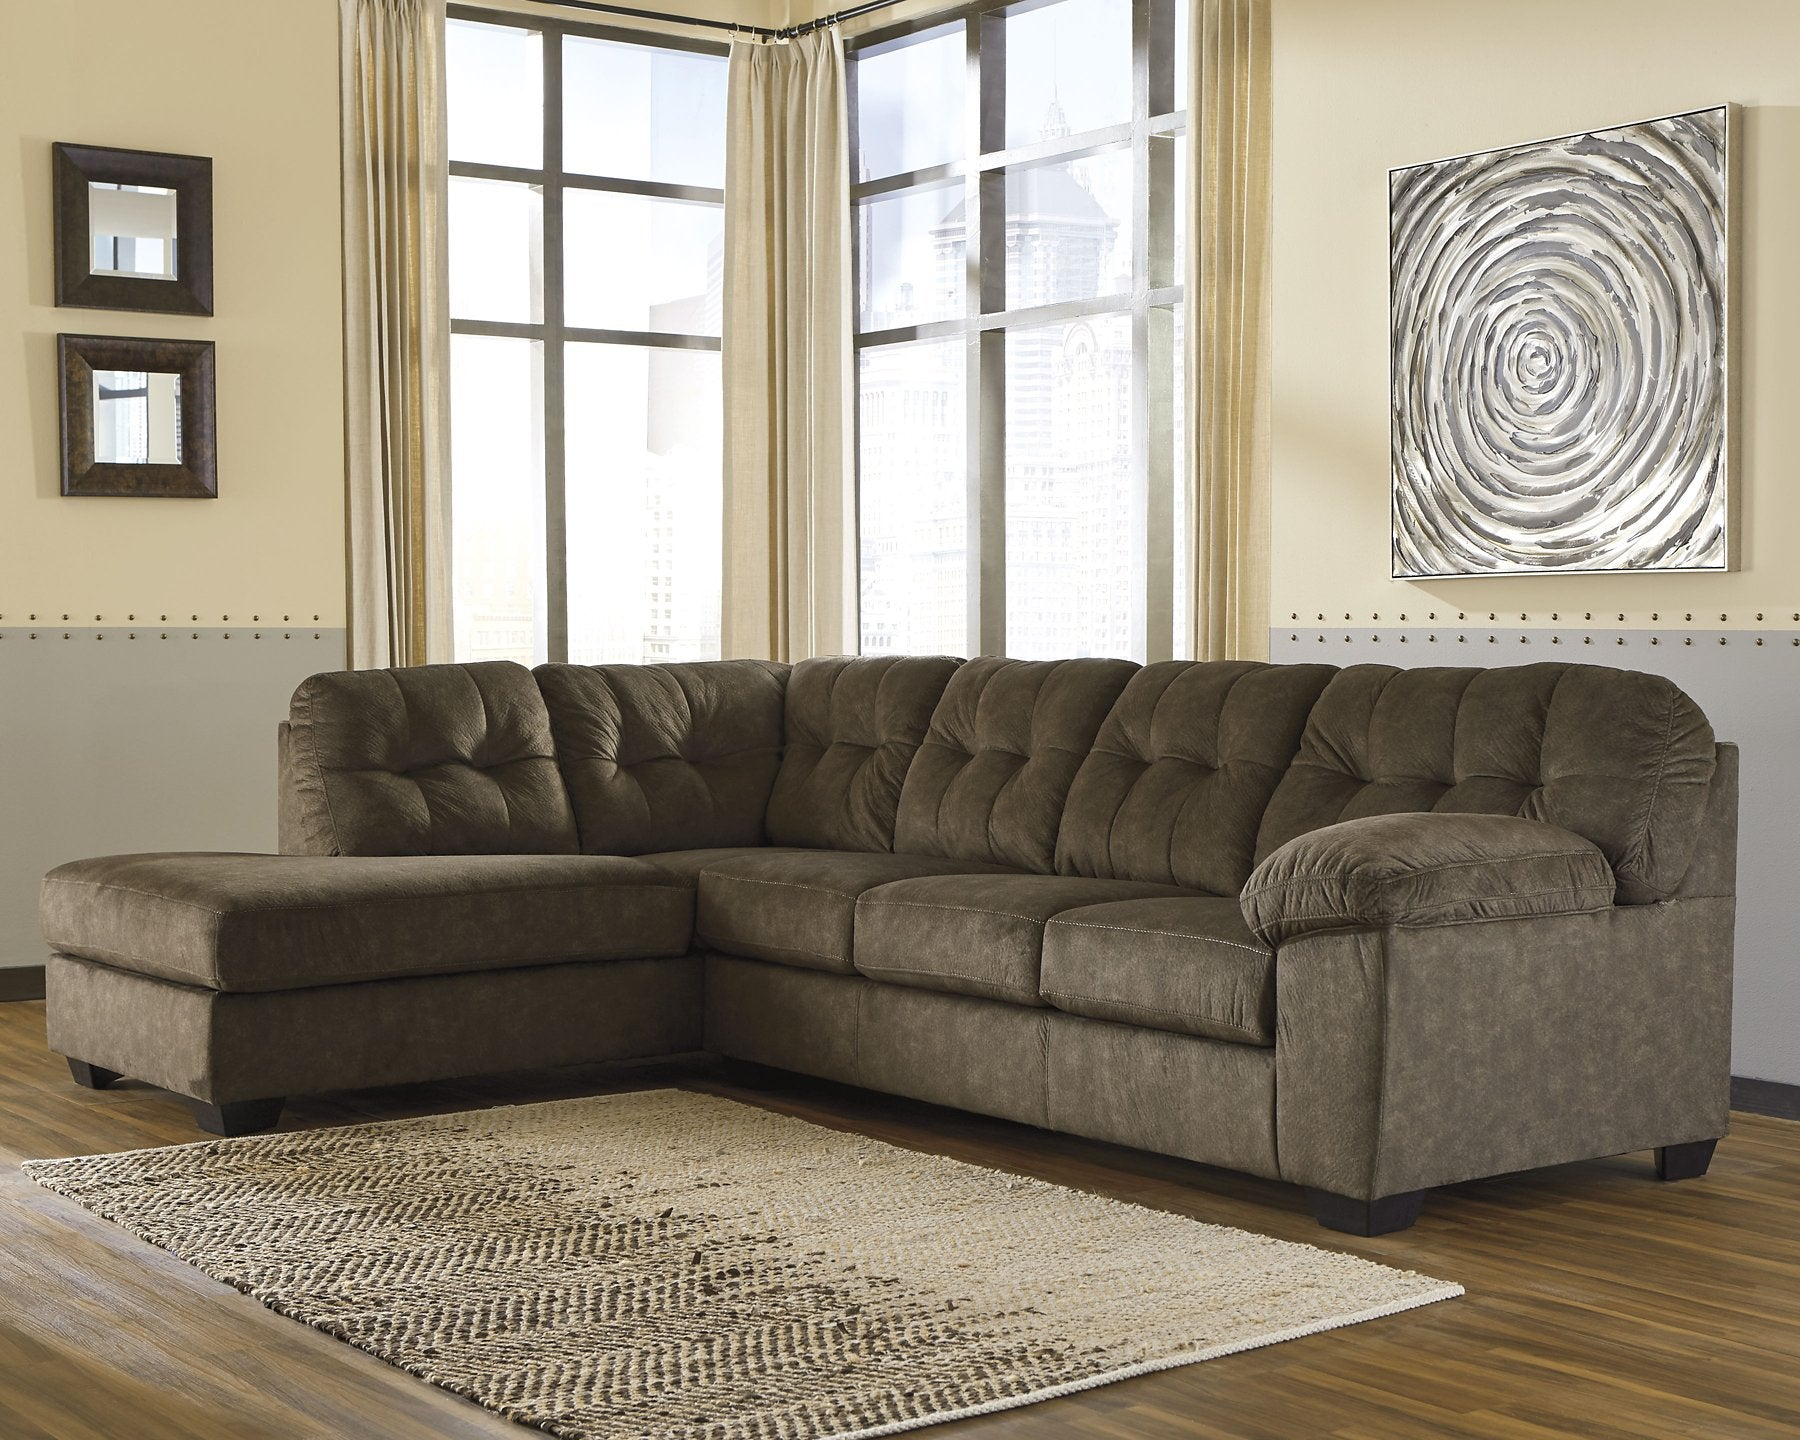 Accrington Signature Design by Ashley 2-Piece Sectional with Chaise